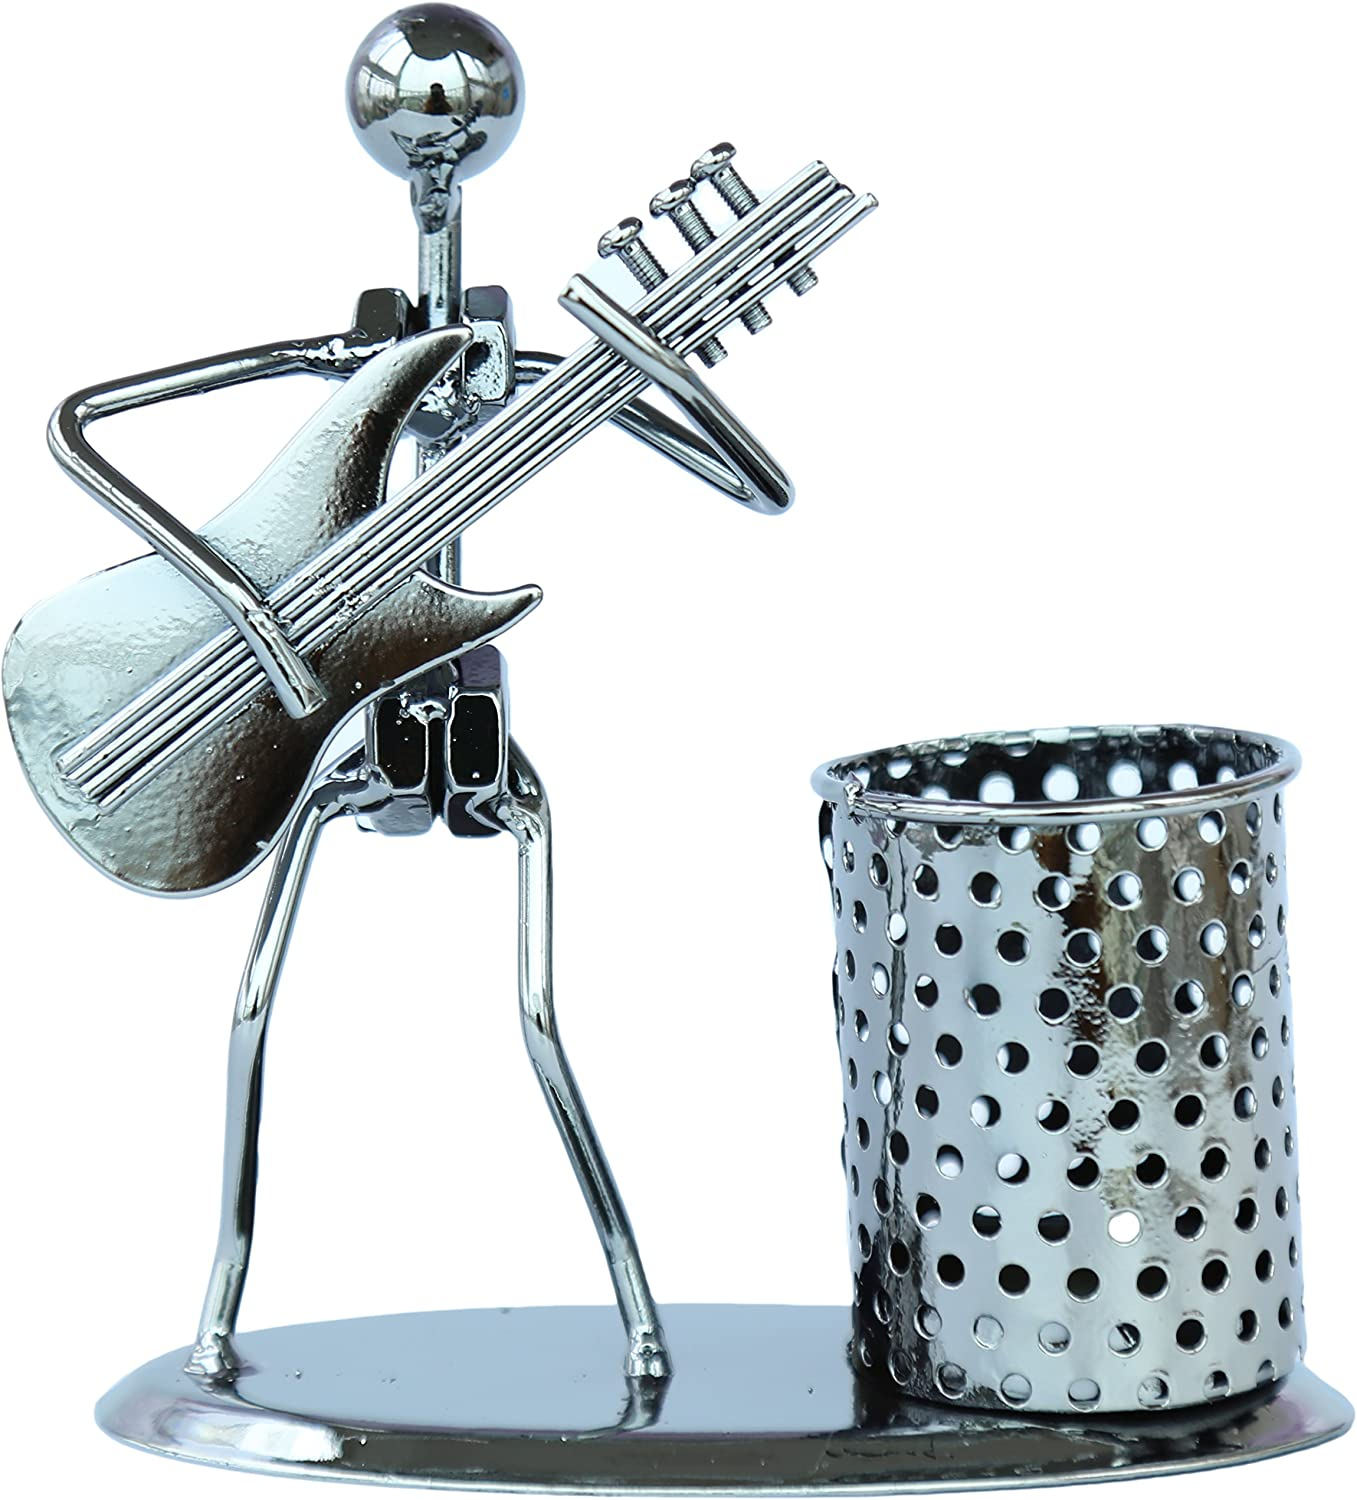 Berry President Decorative Pen Organizer/Pencil Holder Cup Office Supply Desktop Stand (Playing Guitar)